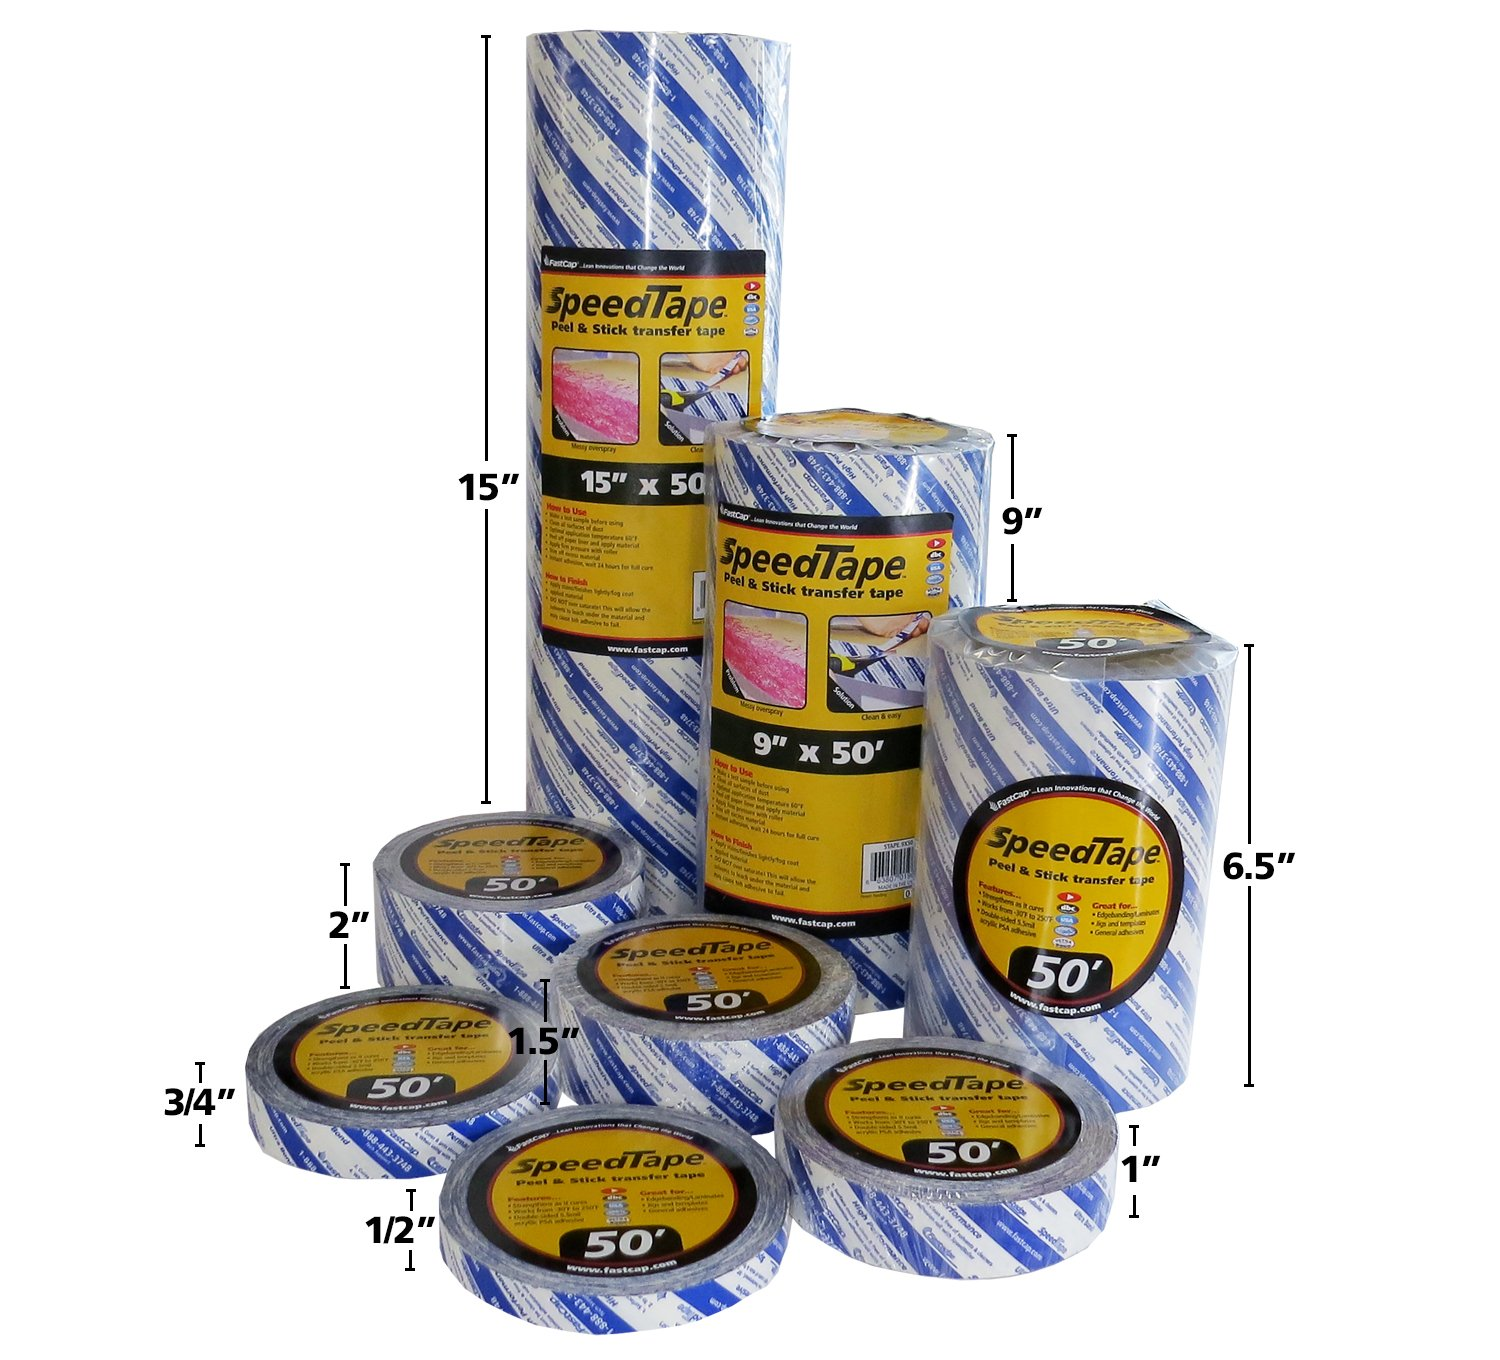 FastCap STAPE.1X50 SpeedTape 1 x 50 Peel and Stick Speed Tapes, 6-Pack